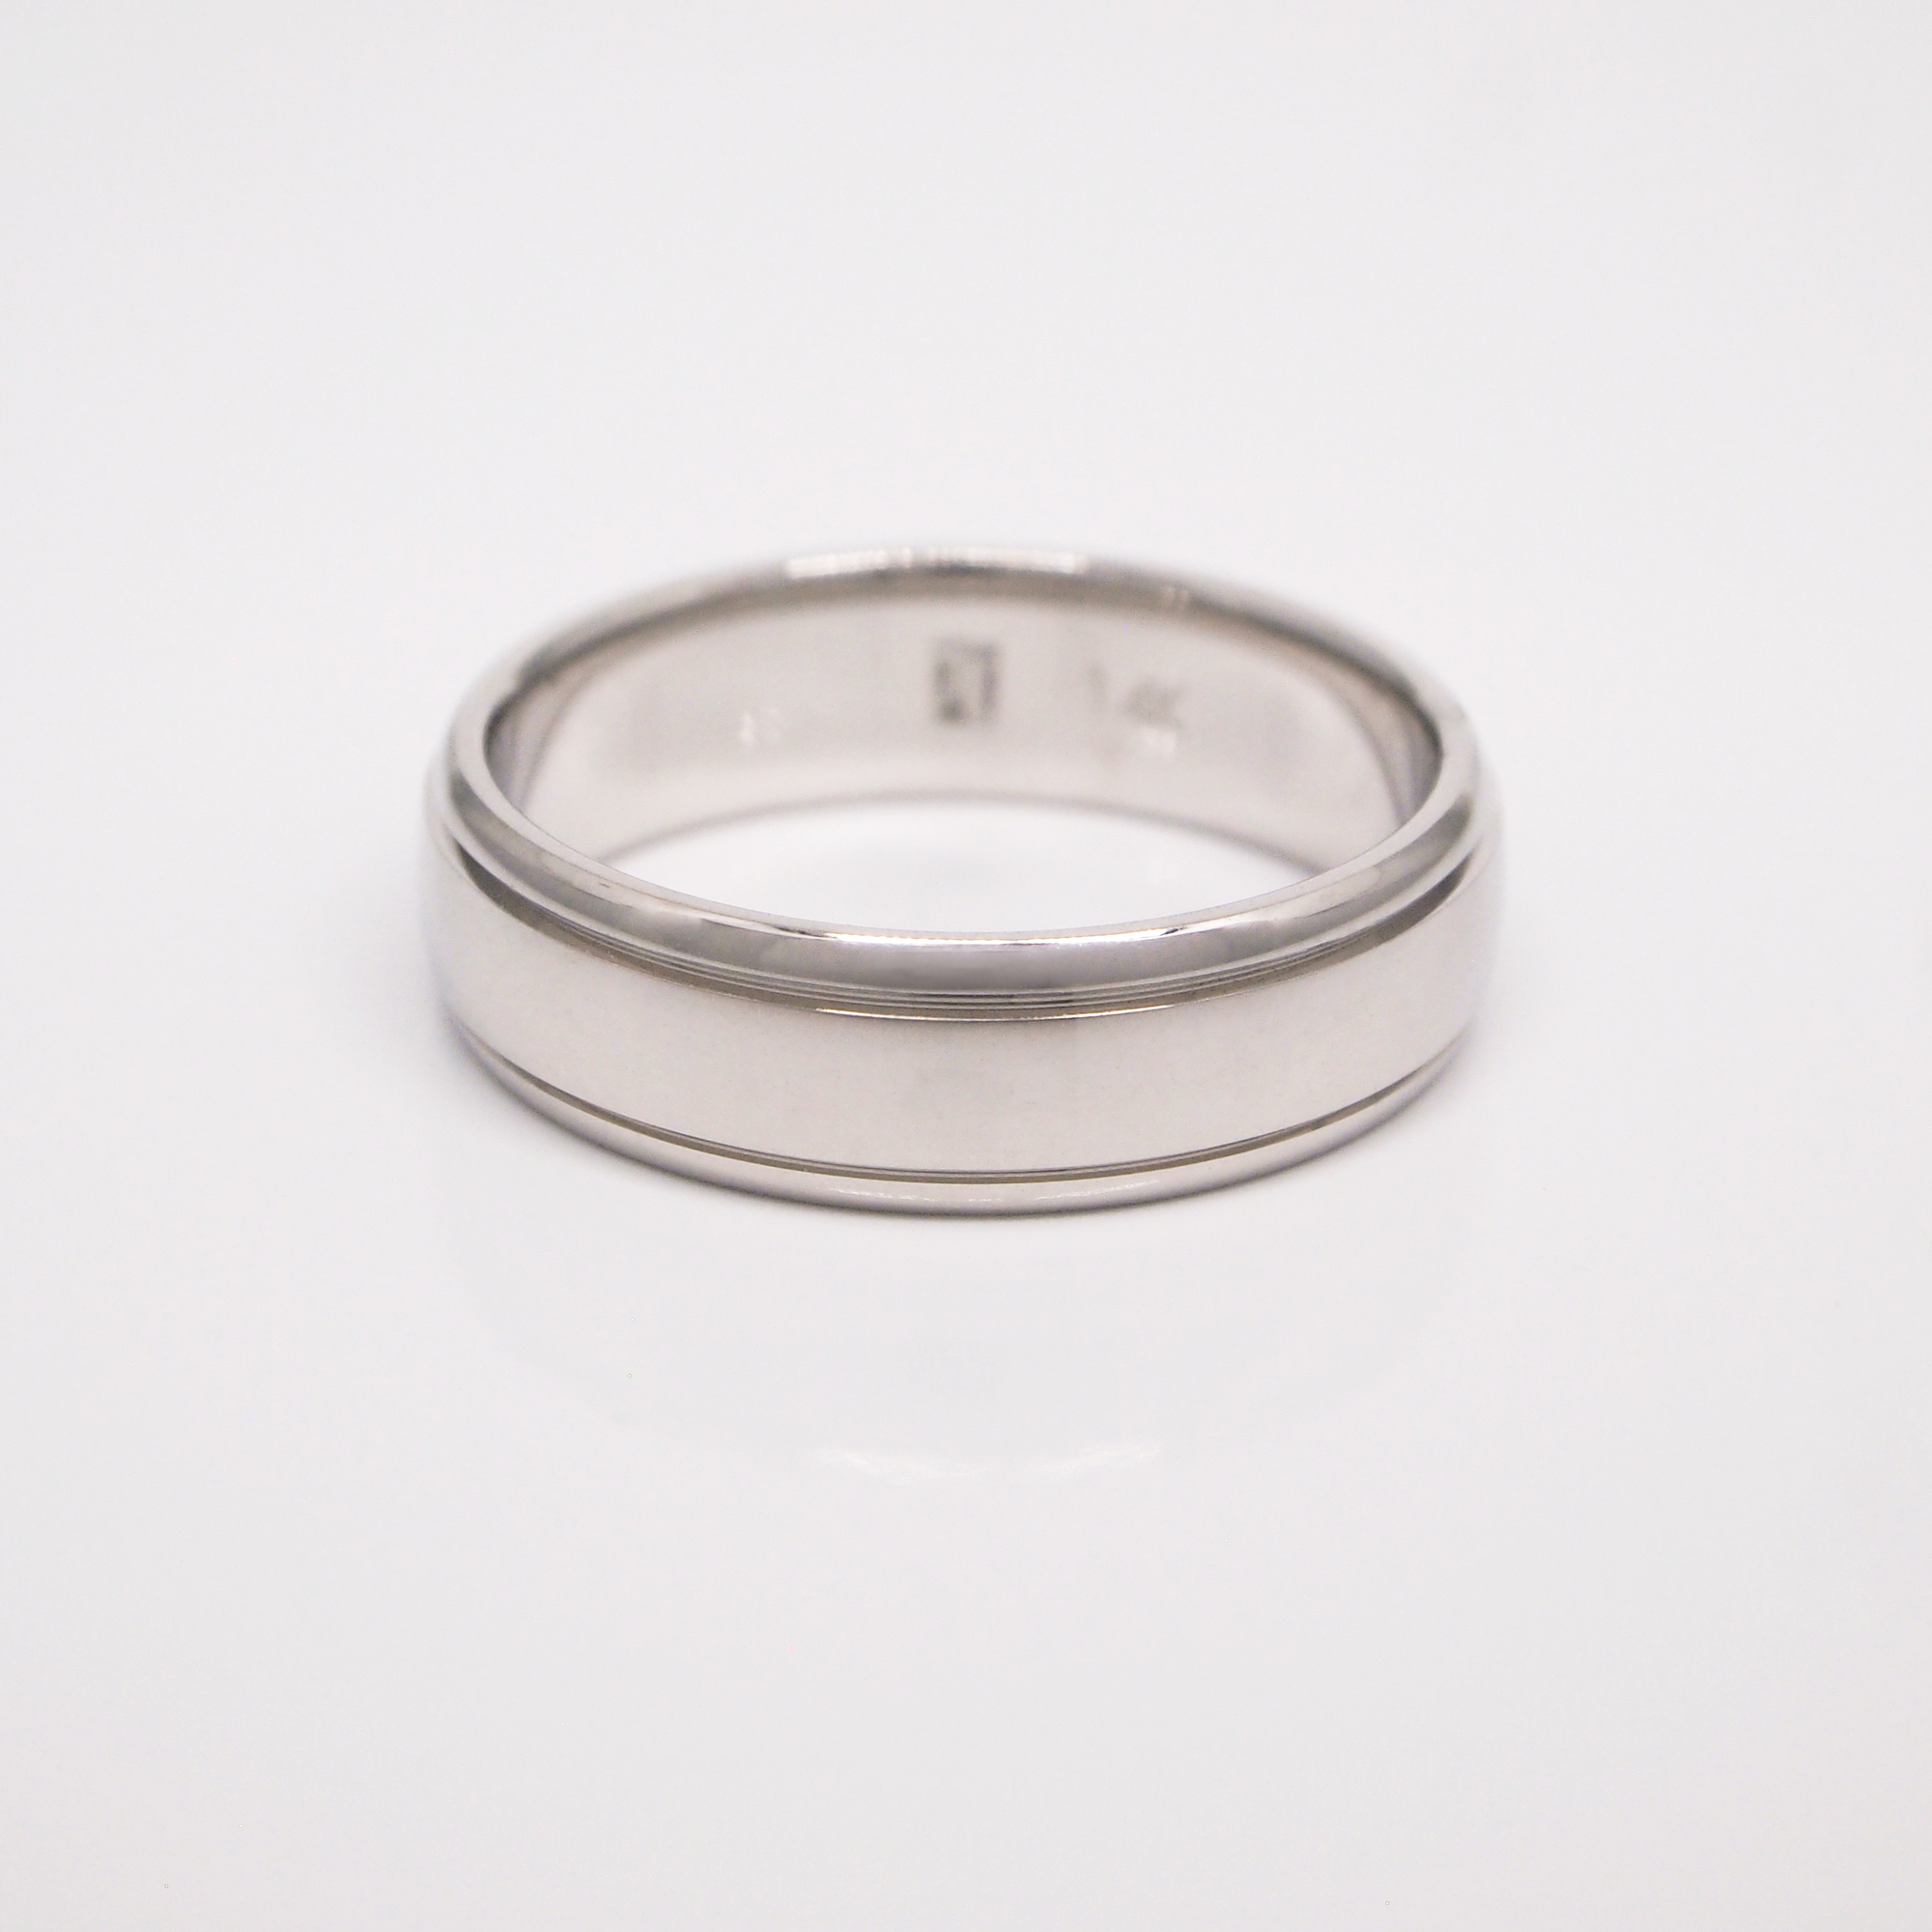 14K white gold 6mm men's wedding band featuring a medium dome, a high polish finish, and thin channels.